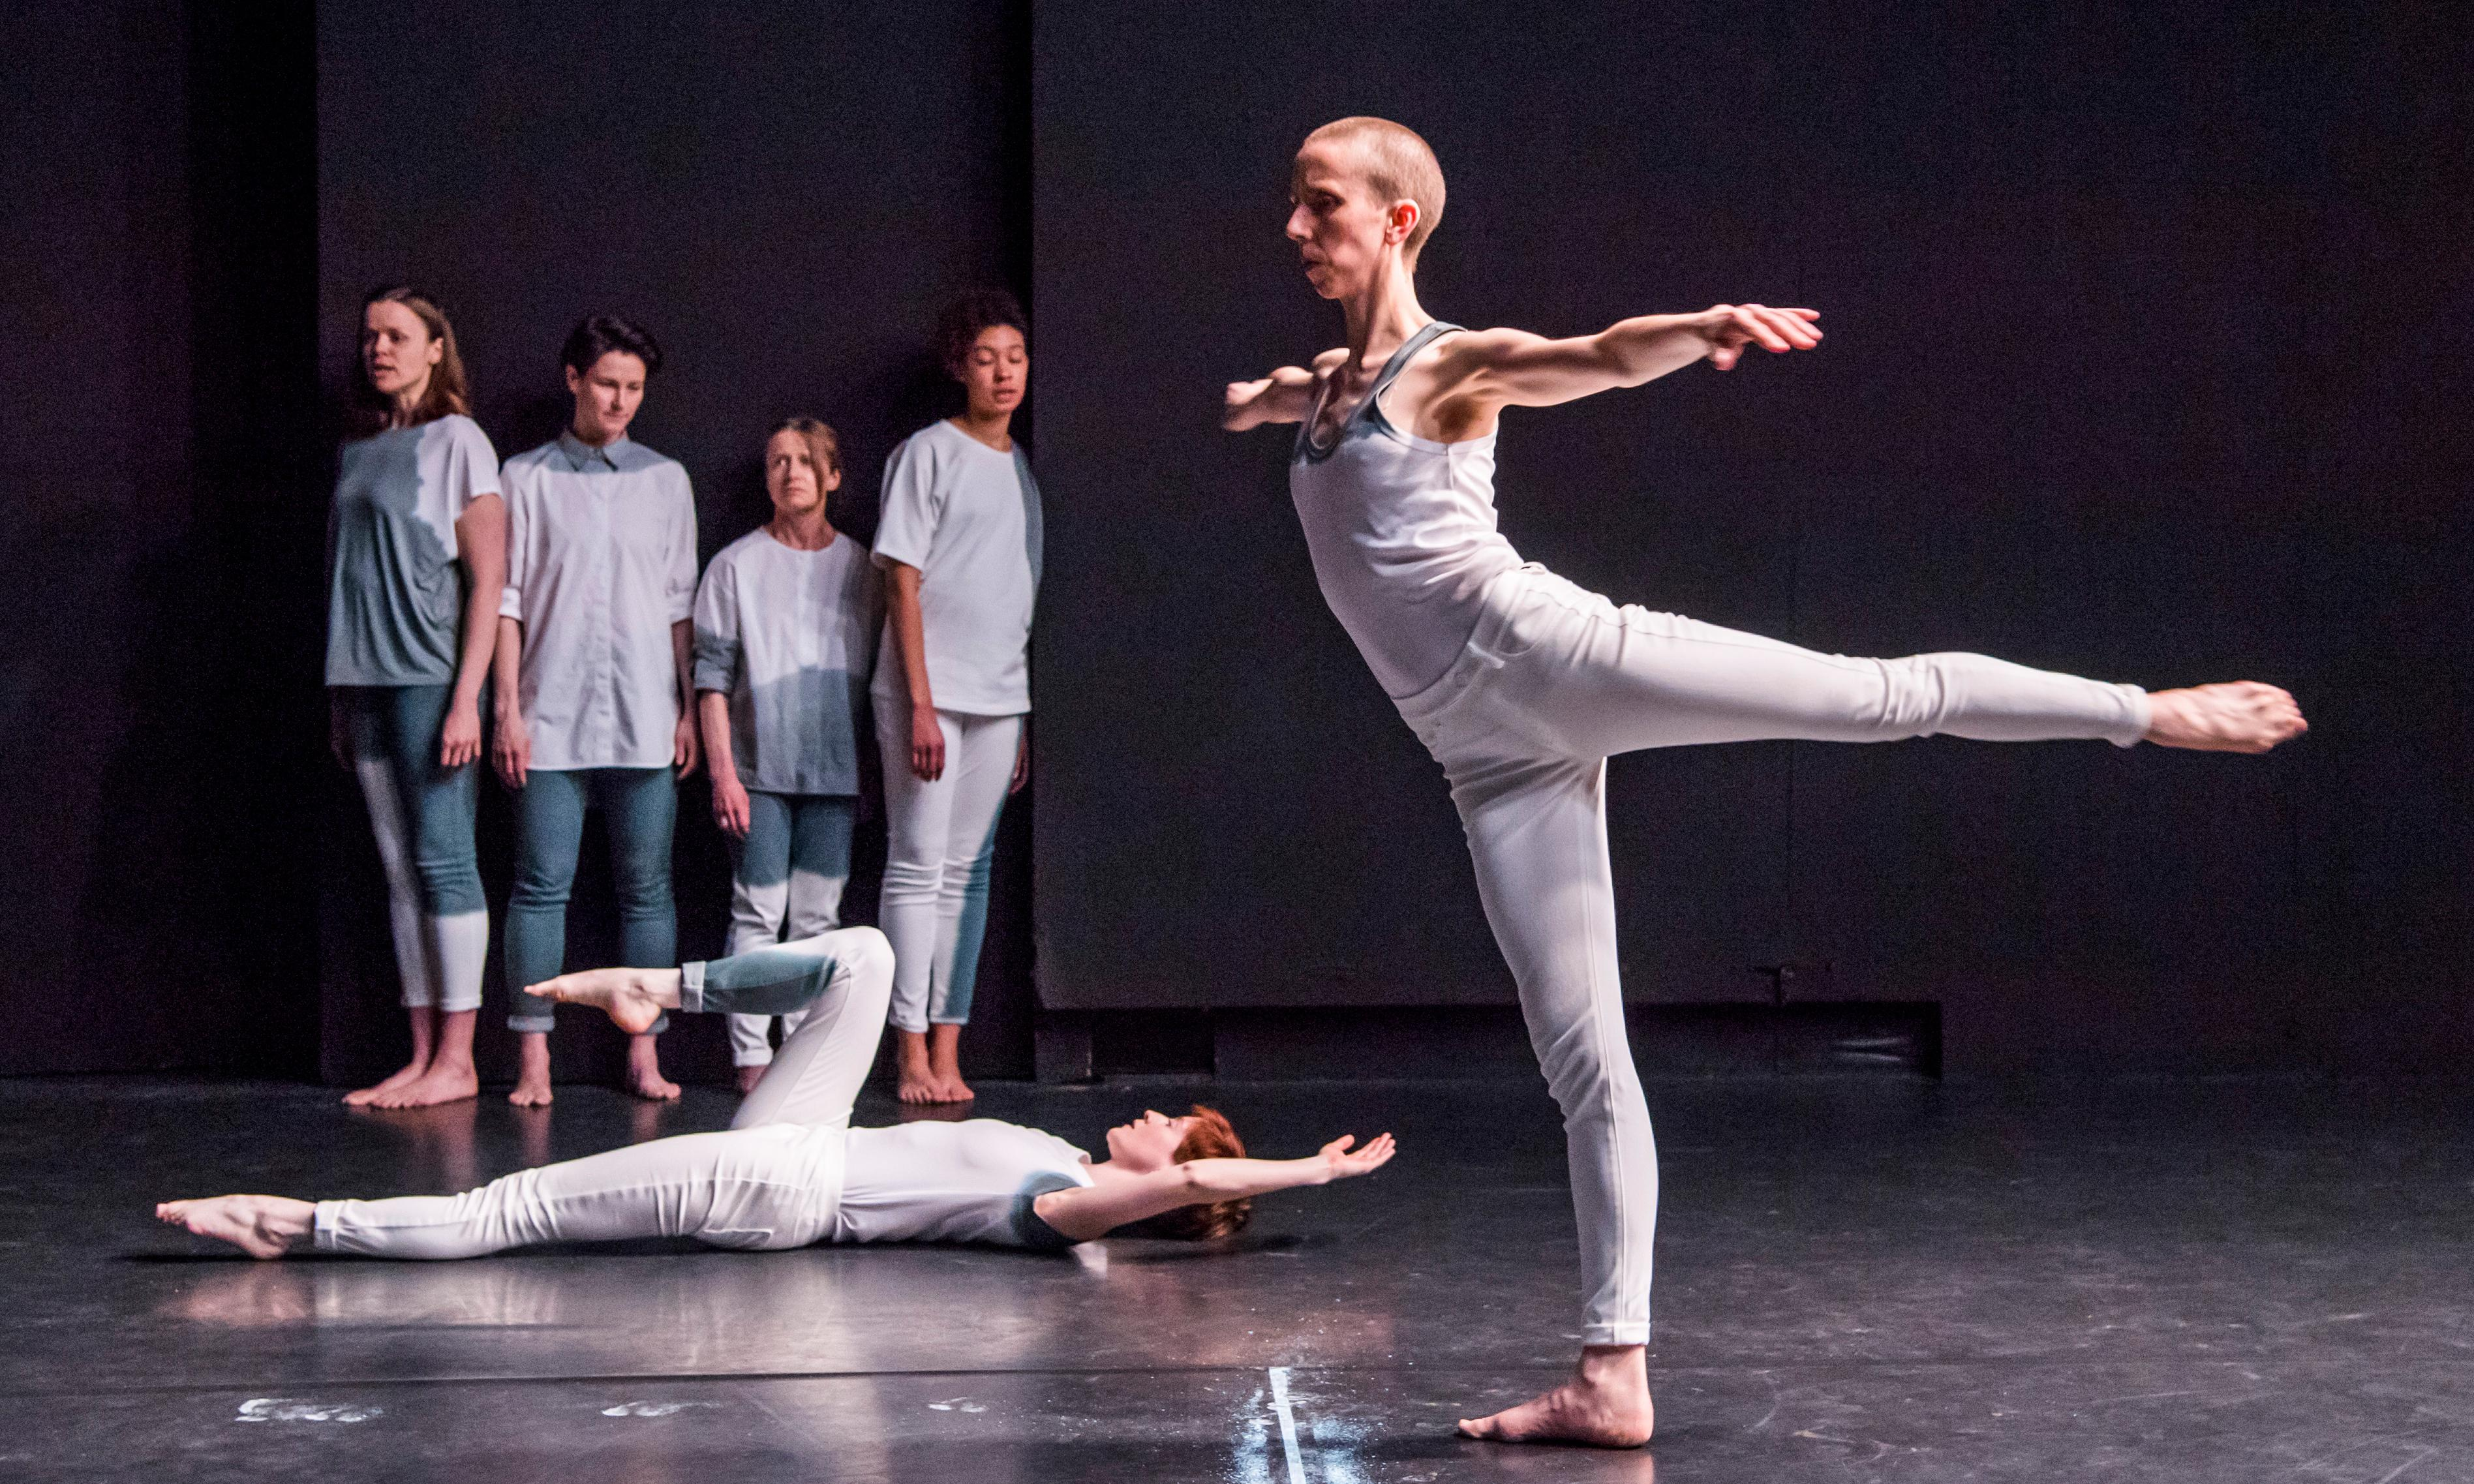 Crave review – Julie Cunningham dances in the darkness of Sarah Kane's play